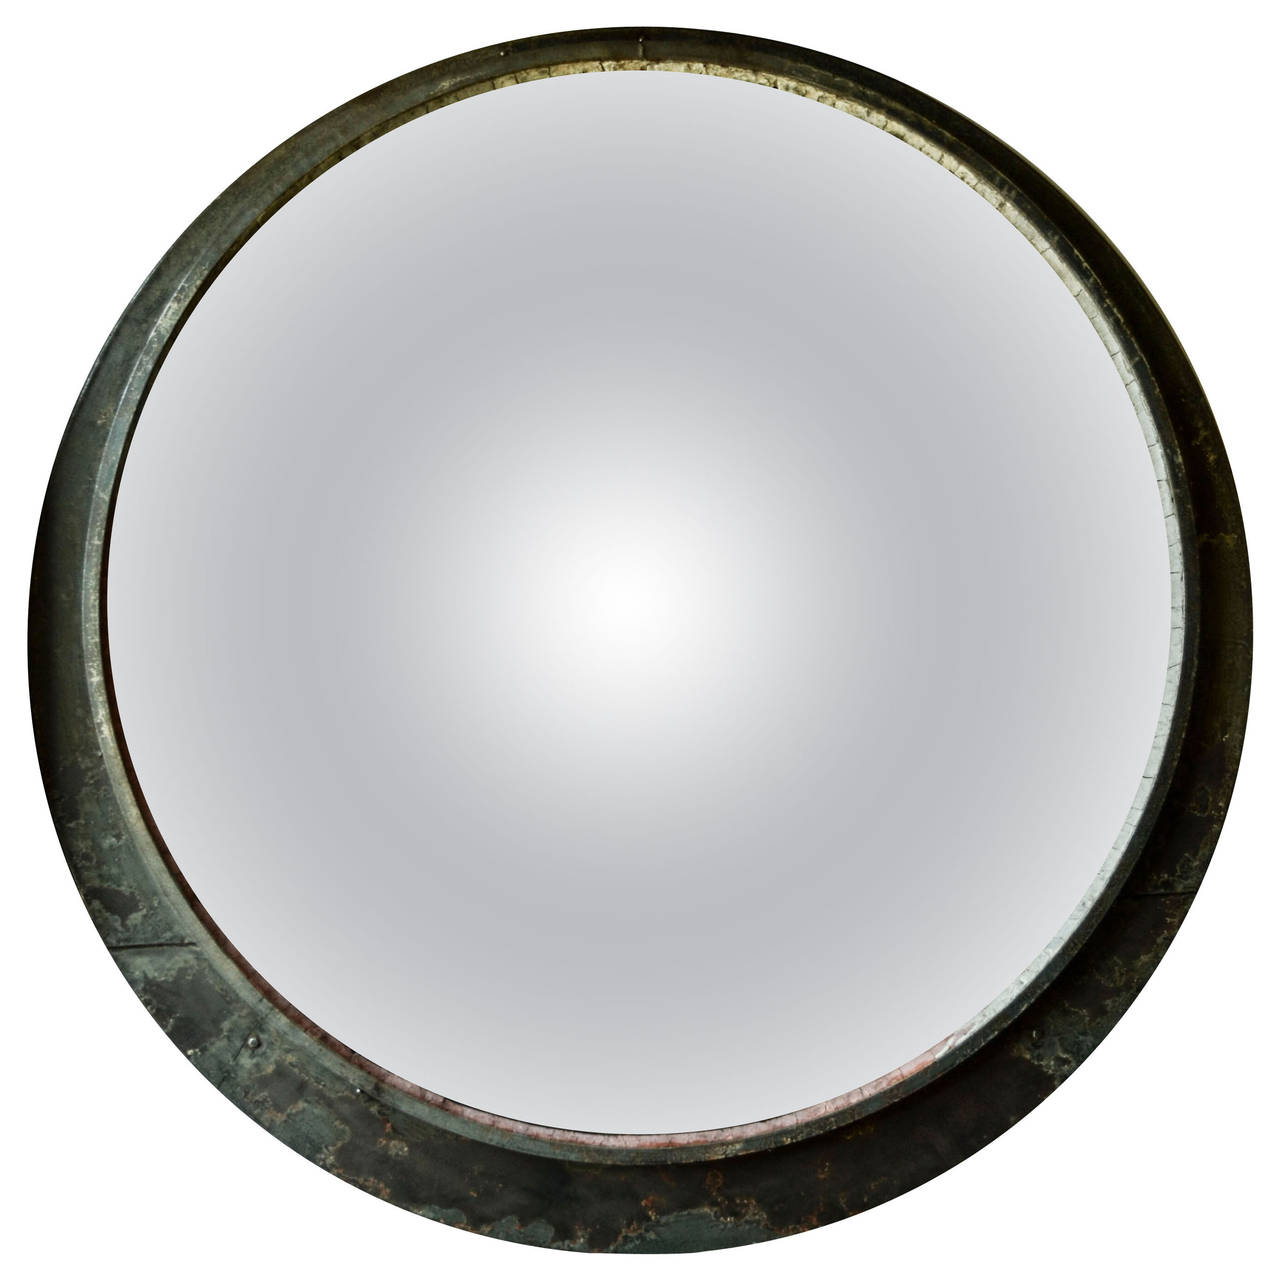 Round Train Mirror | See more antique and modern Wall Mirrors at https://www.1stdibs.com/furniture/mirrors/wall-mirrors